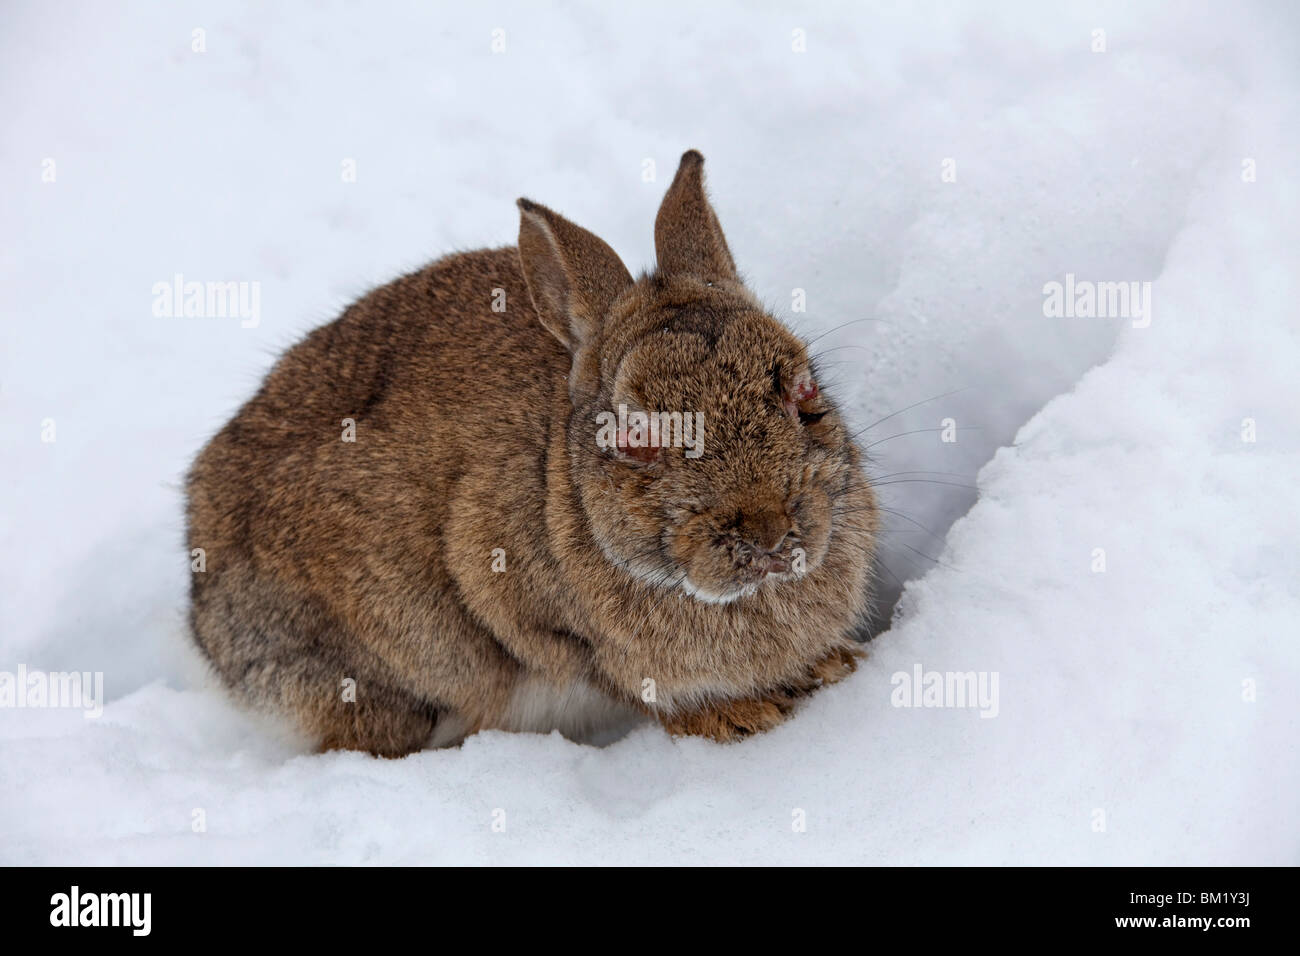 Rabbit (Oryctolagus cuniculus) in the snow in winter, infected with the Myxomatosis disease showing swelling around - Stock Image